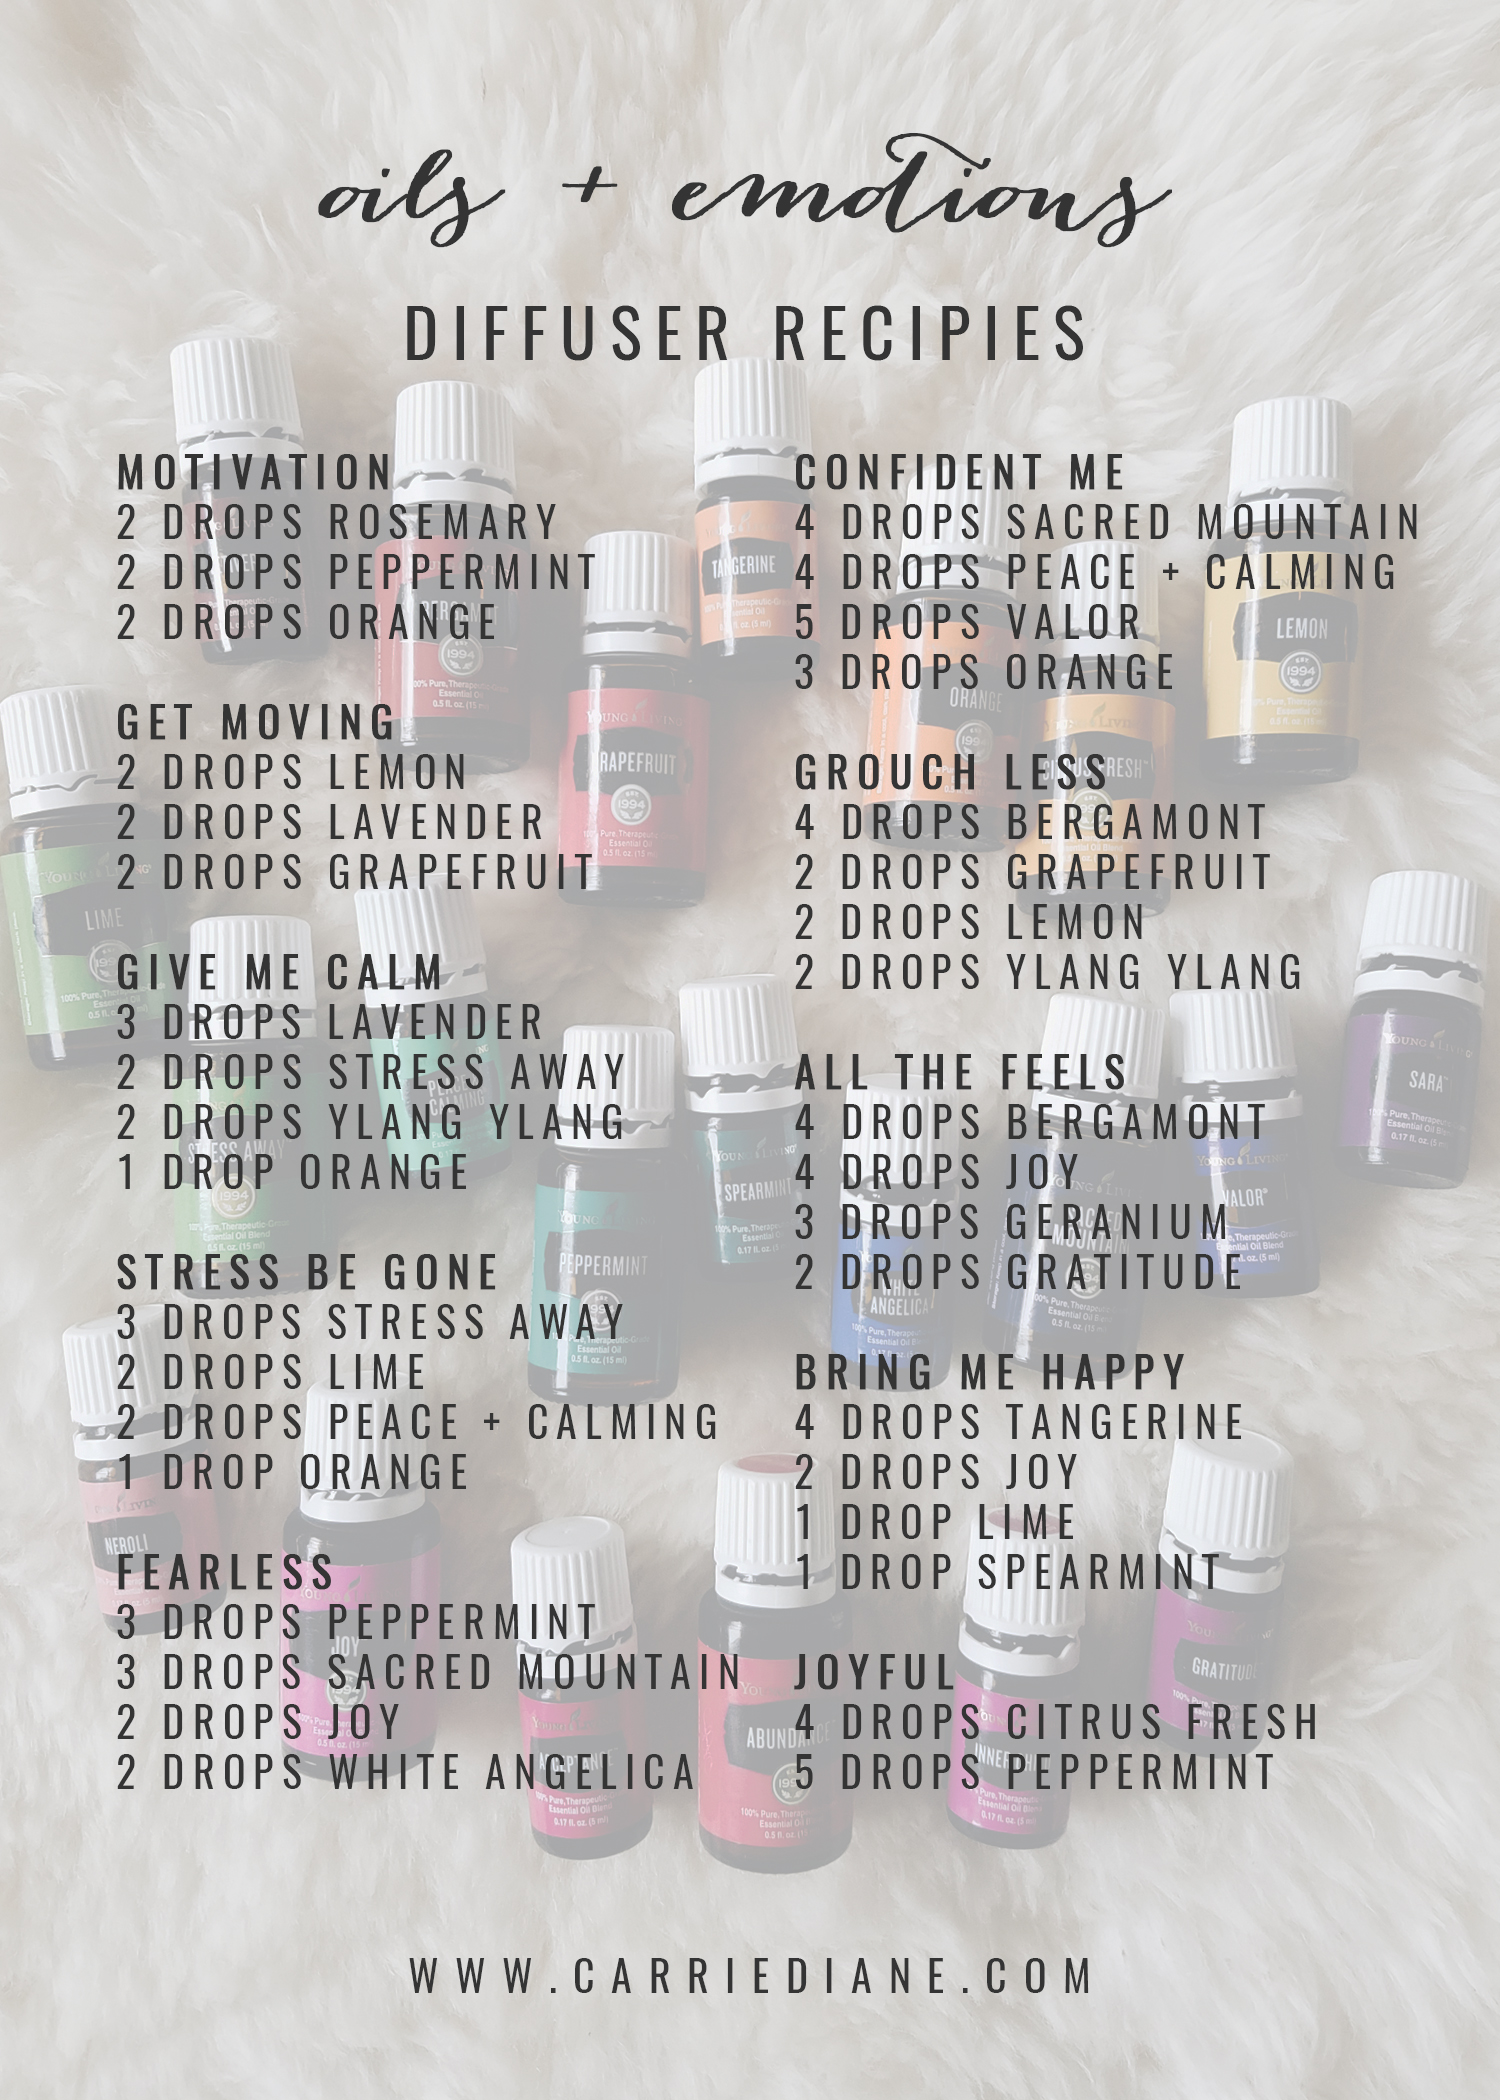 essential-oils-and-your-emotions-diffuser-recipes-01.jpg